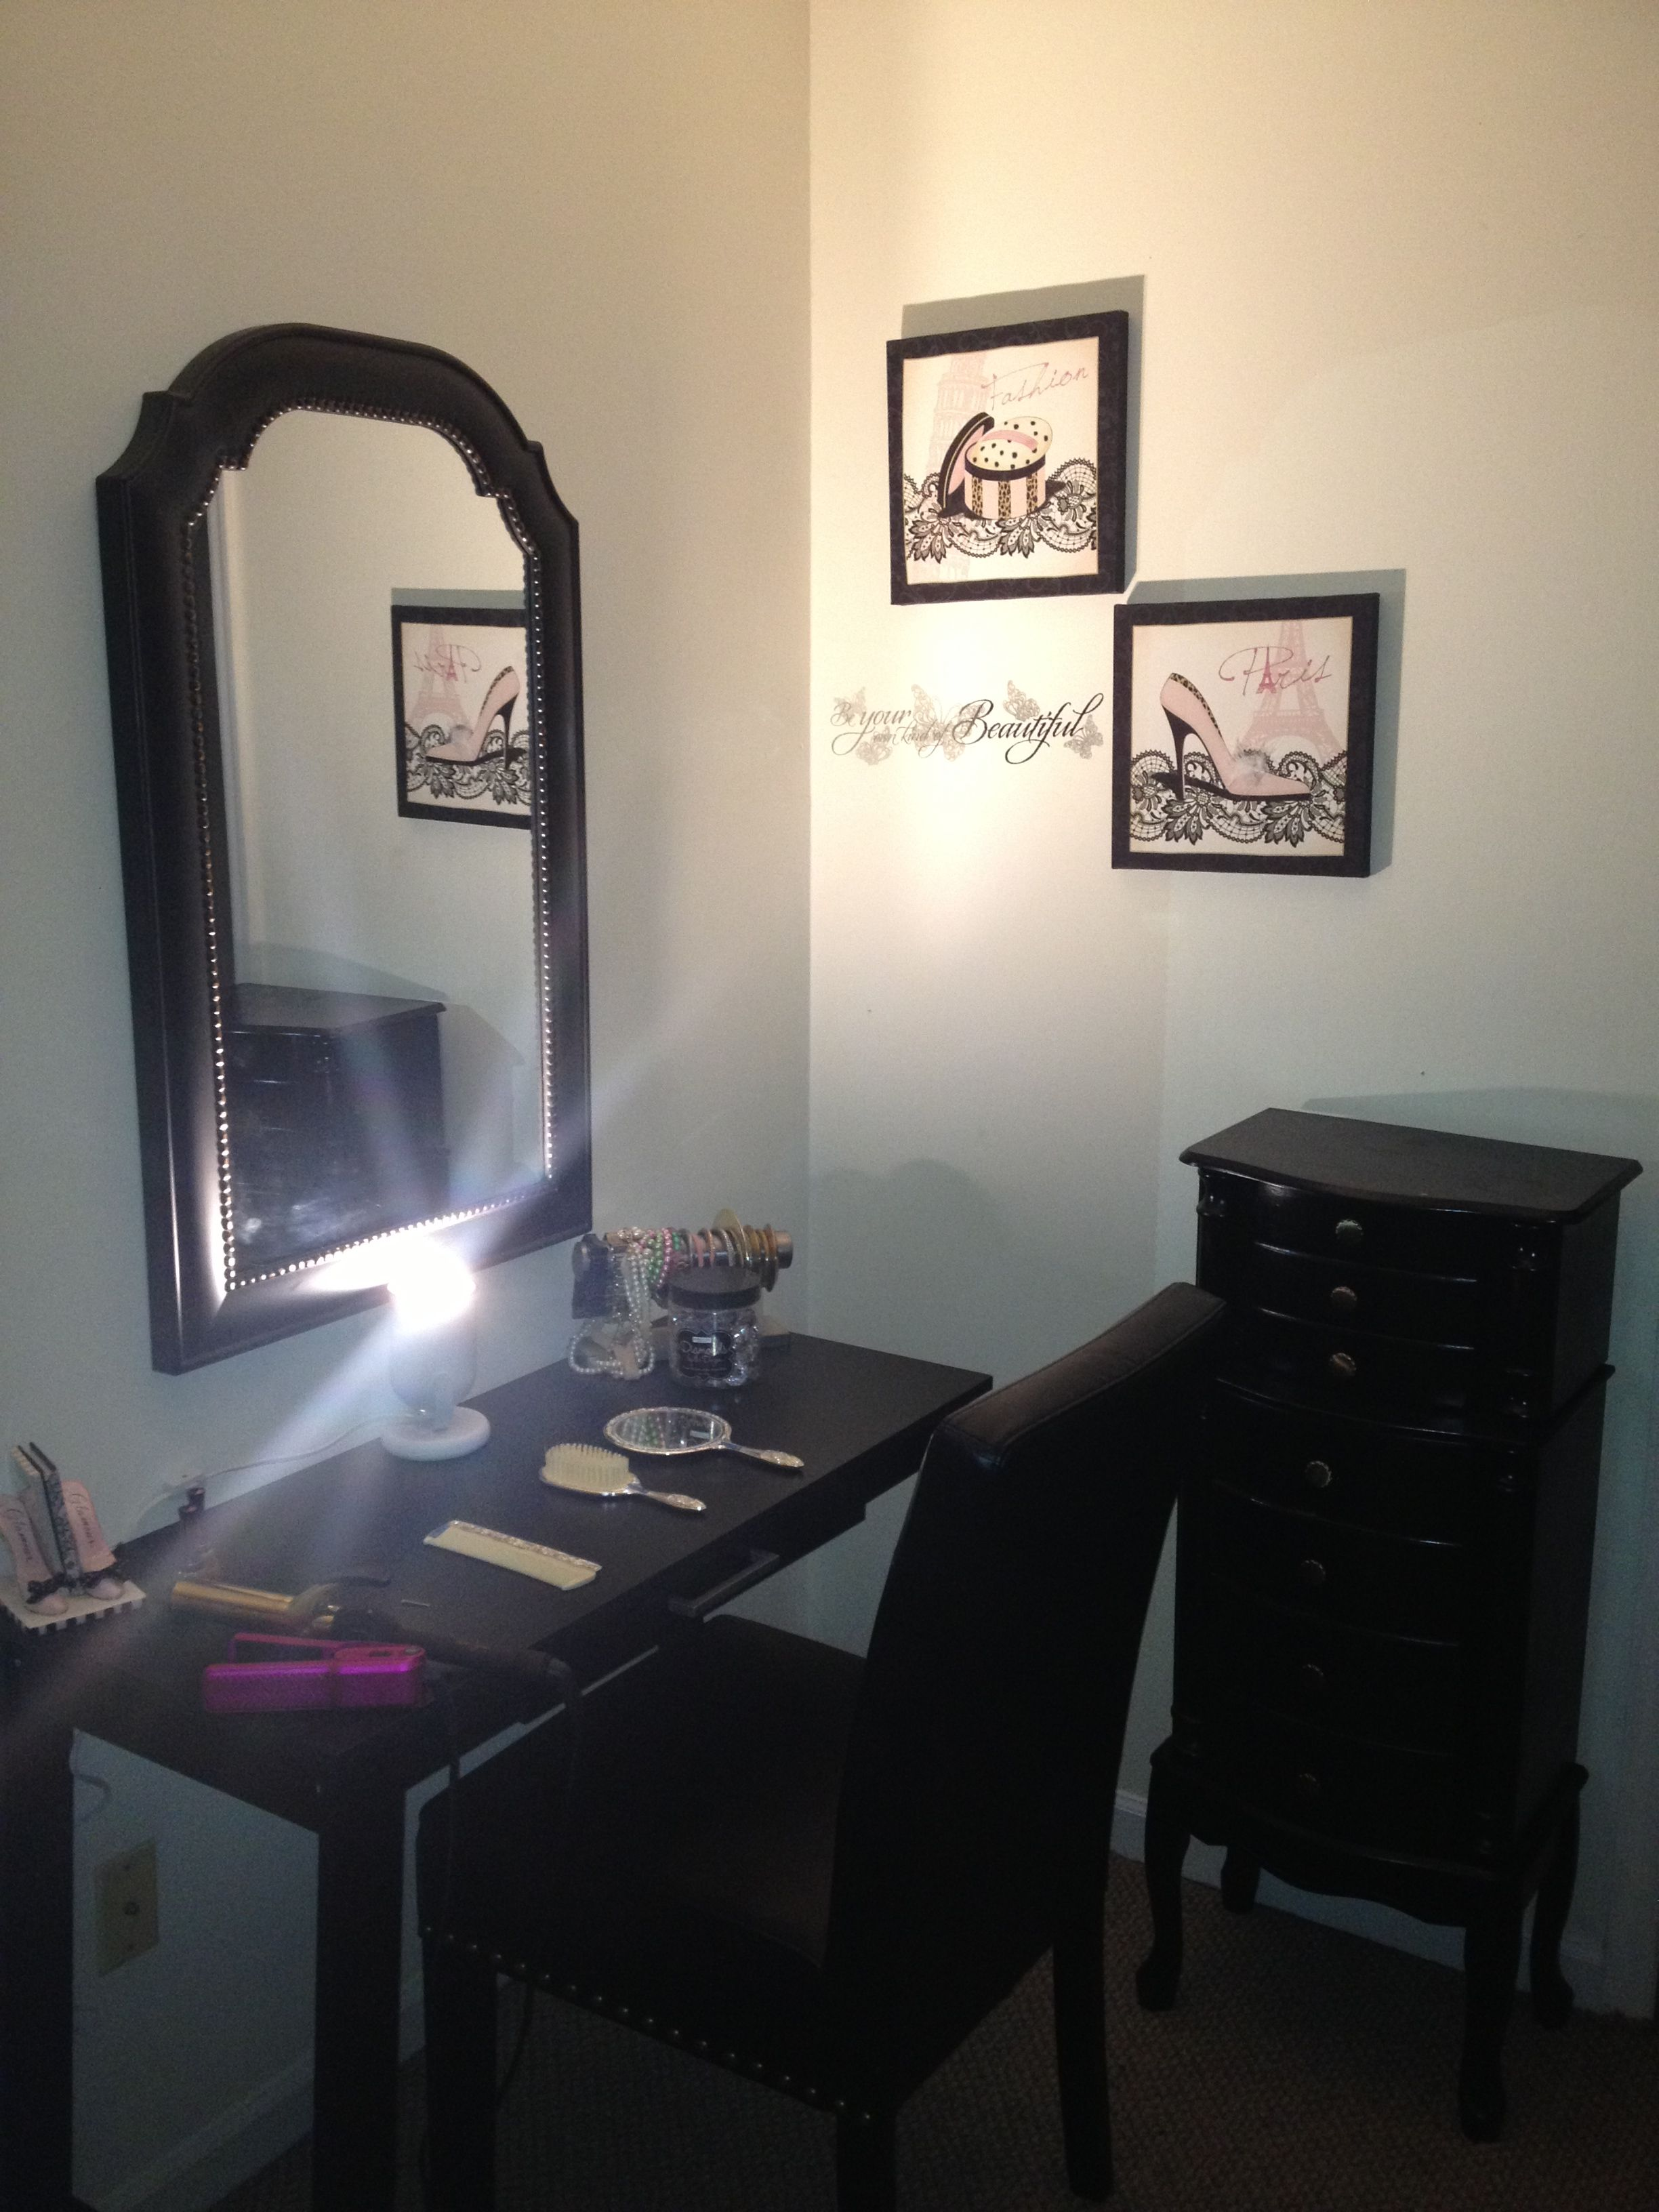 Vanity table from Walmart (writing desk), mirror from Home